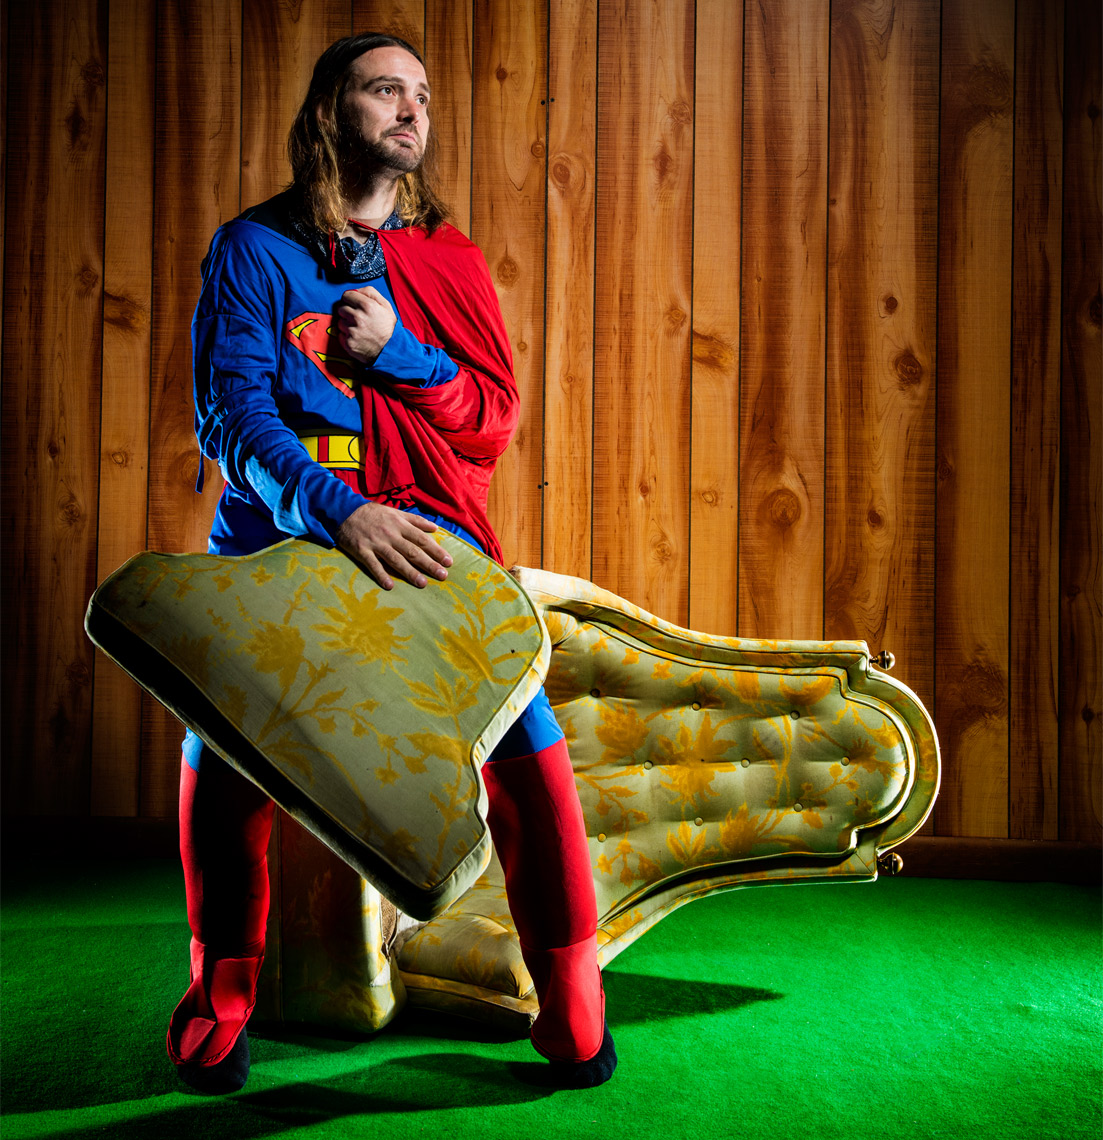 Superman in the house Raleigh portrait photography